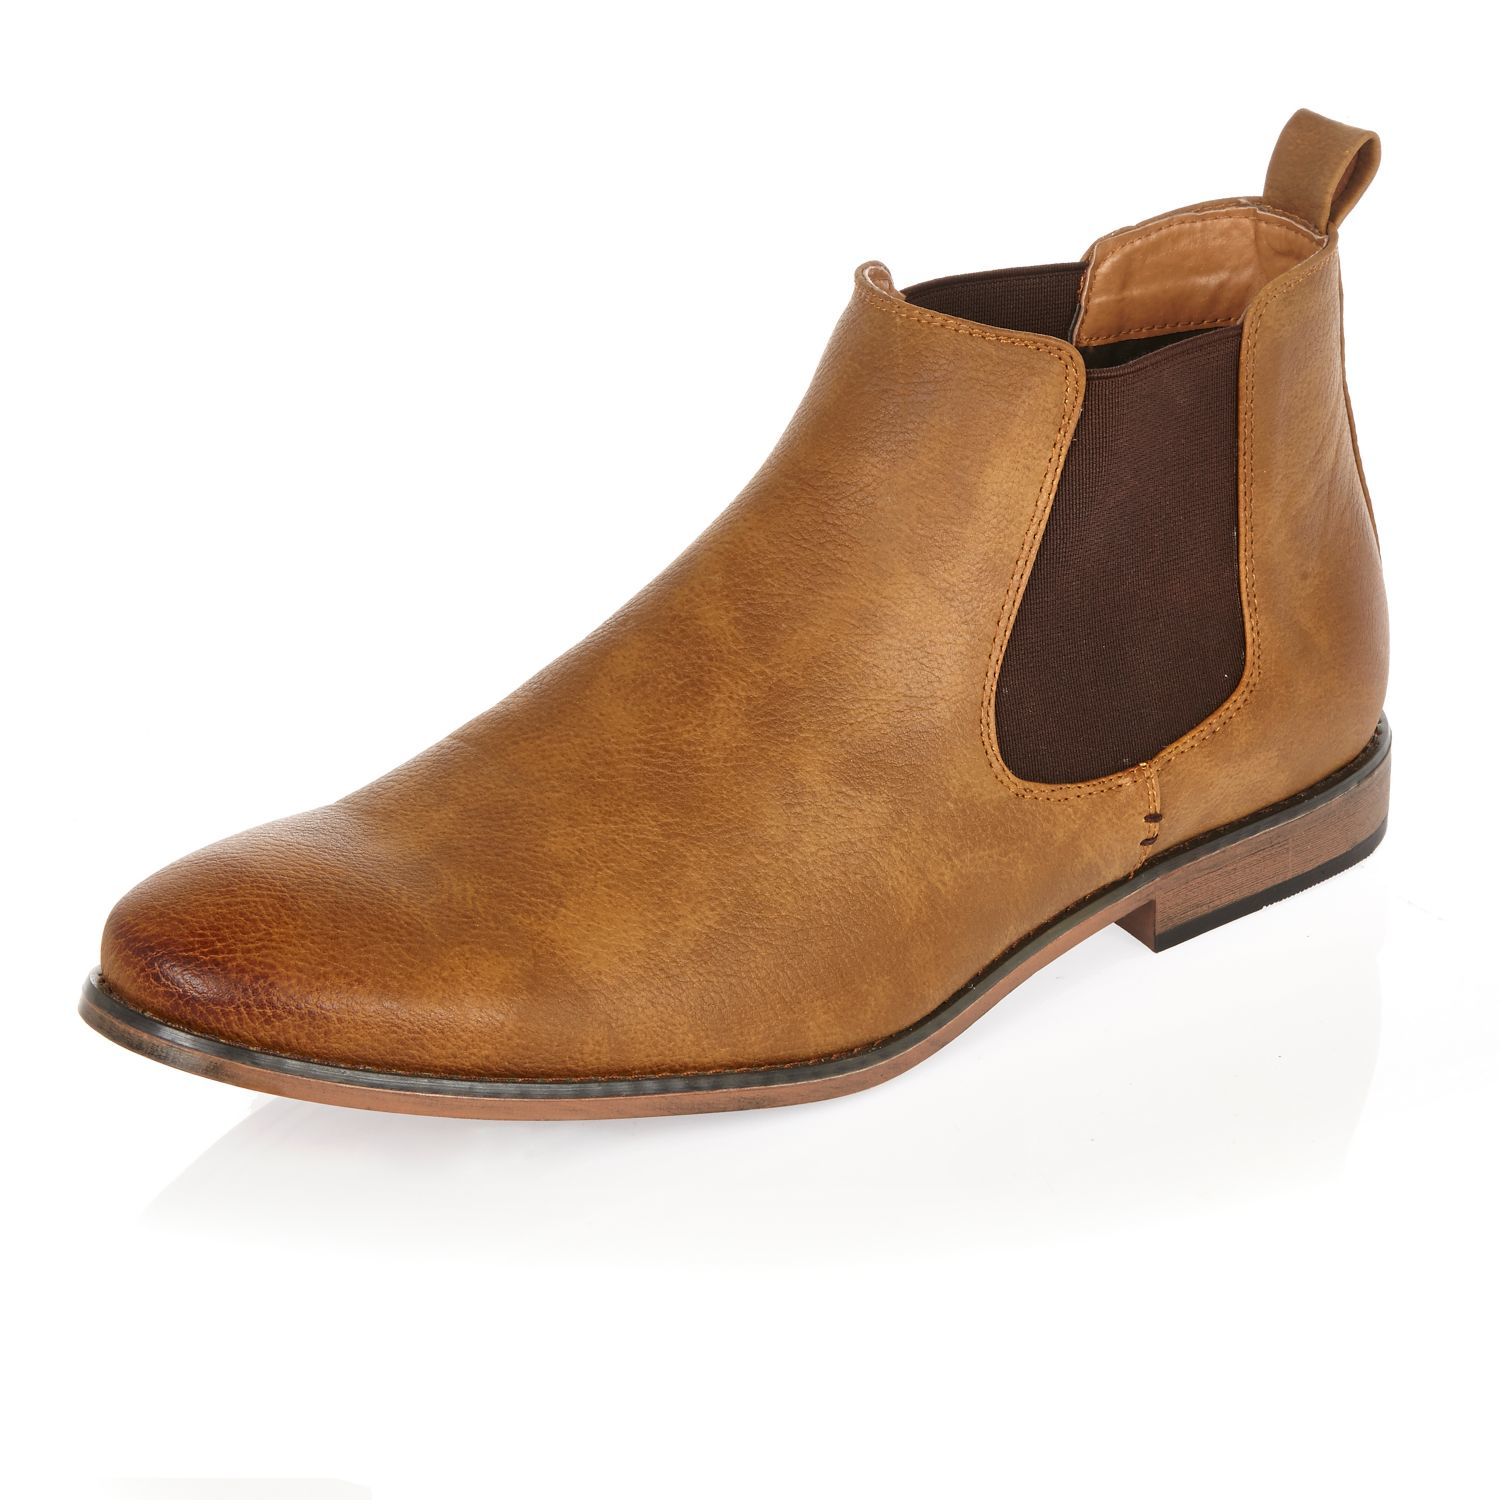 Mens Tan brown suede chelsea boots River Island Prices Cheap Online 4Lh2wz